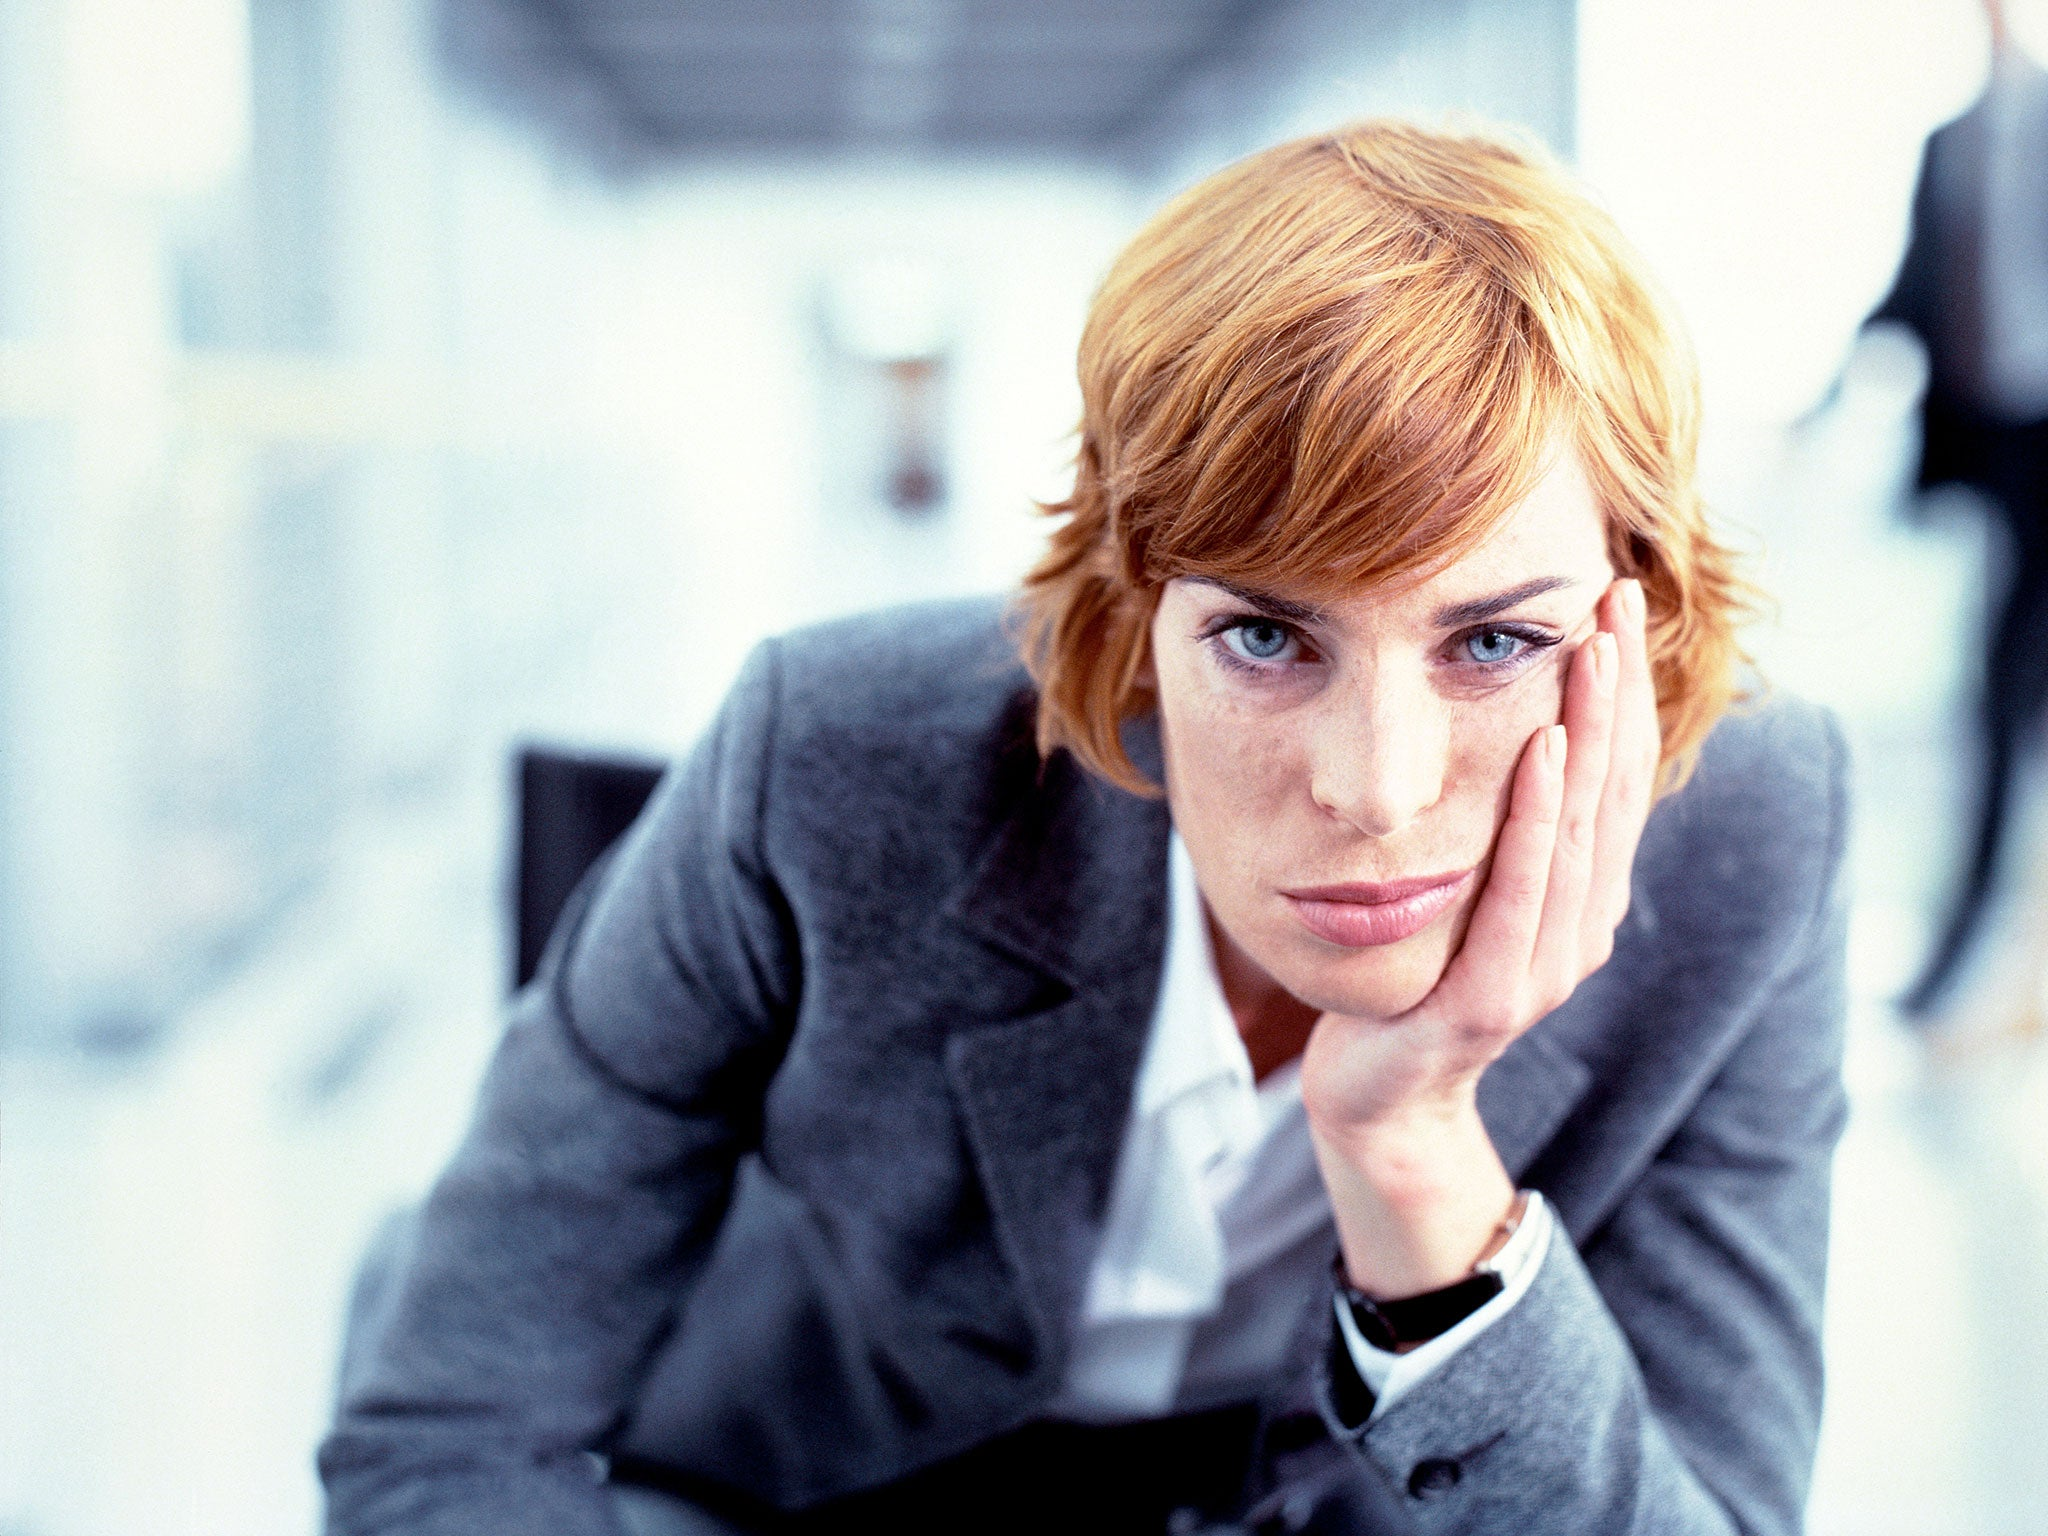 Being bullied at work could leave you more likely to develop diabetes